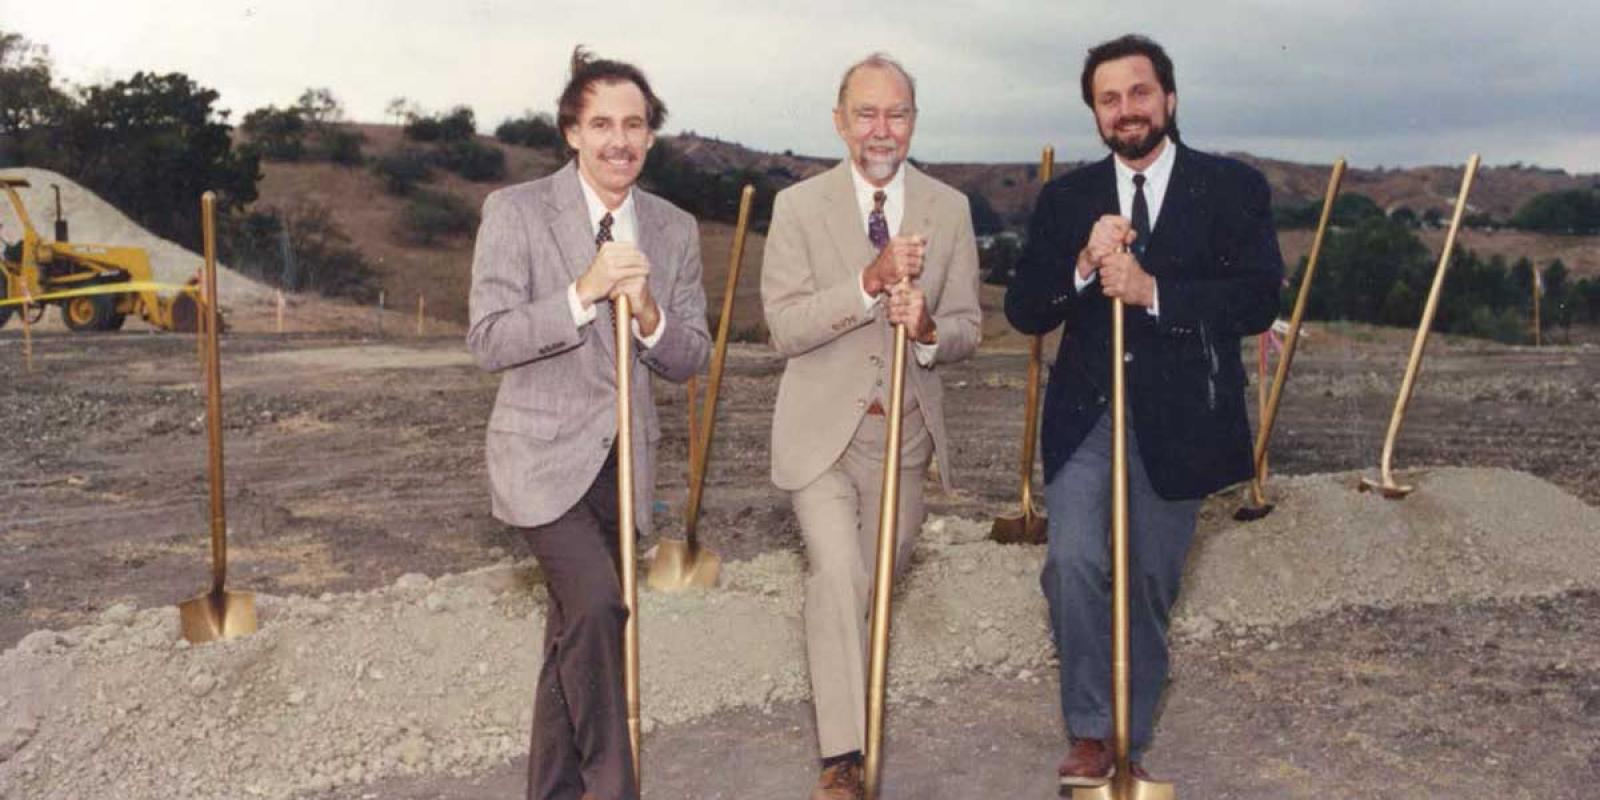 Founding director John T. Lyle (center) at the 1992 groundbreaking ceremony